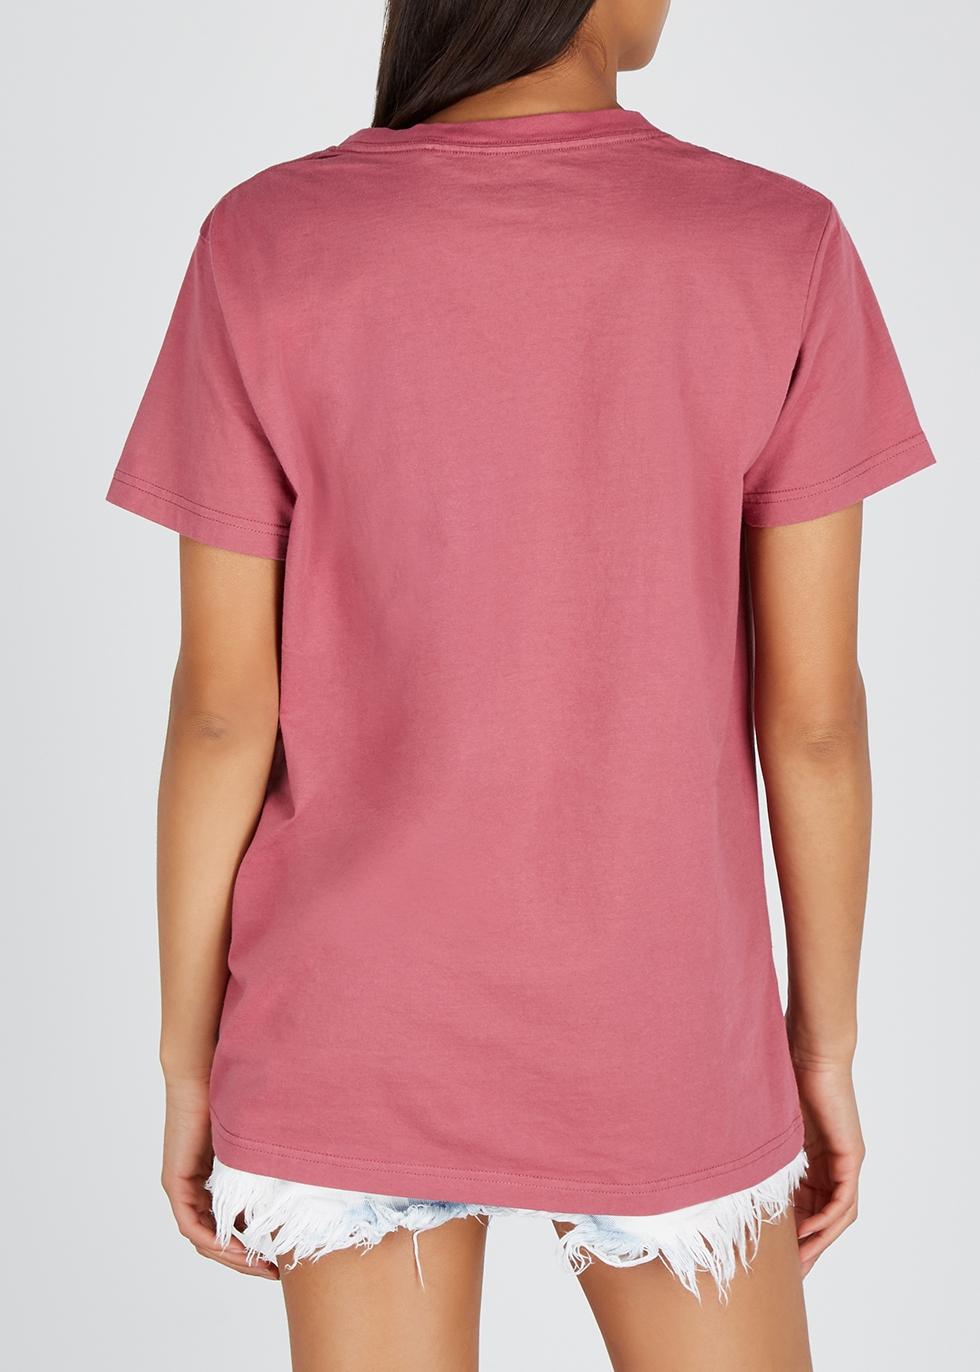 Lost Moon pink cotton T-shirt - Oneteaspoon